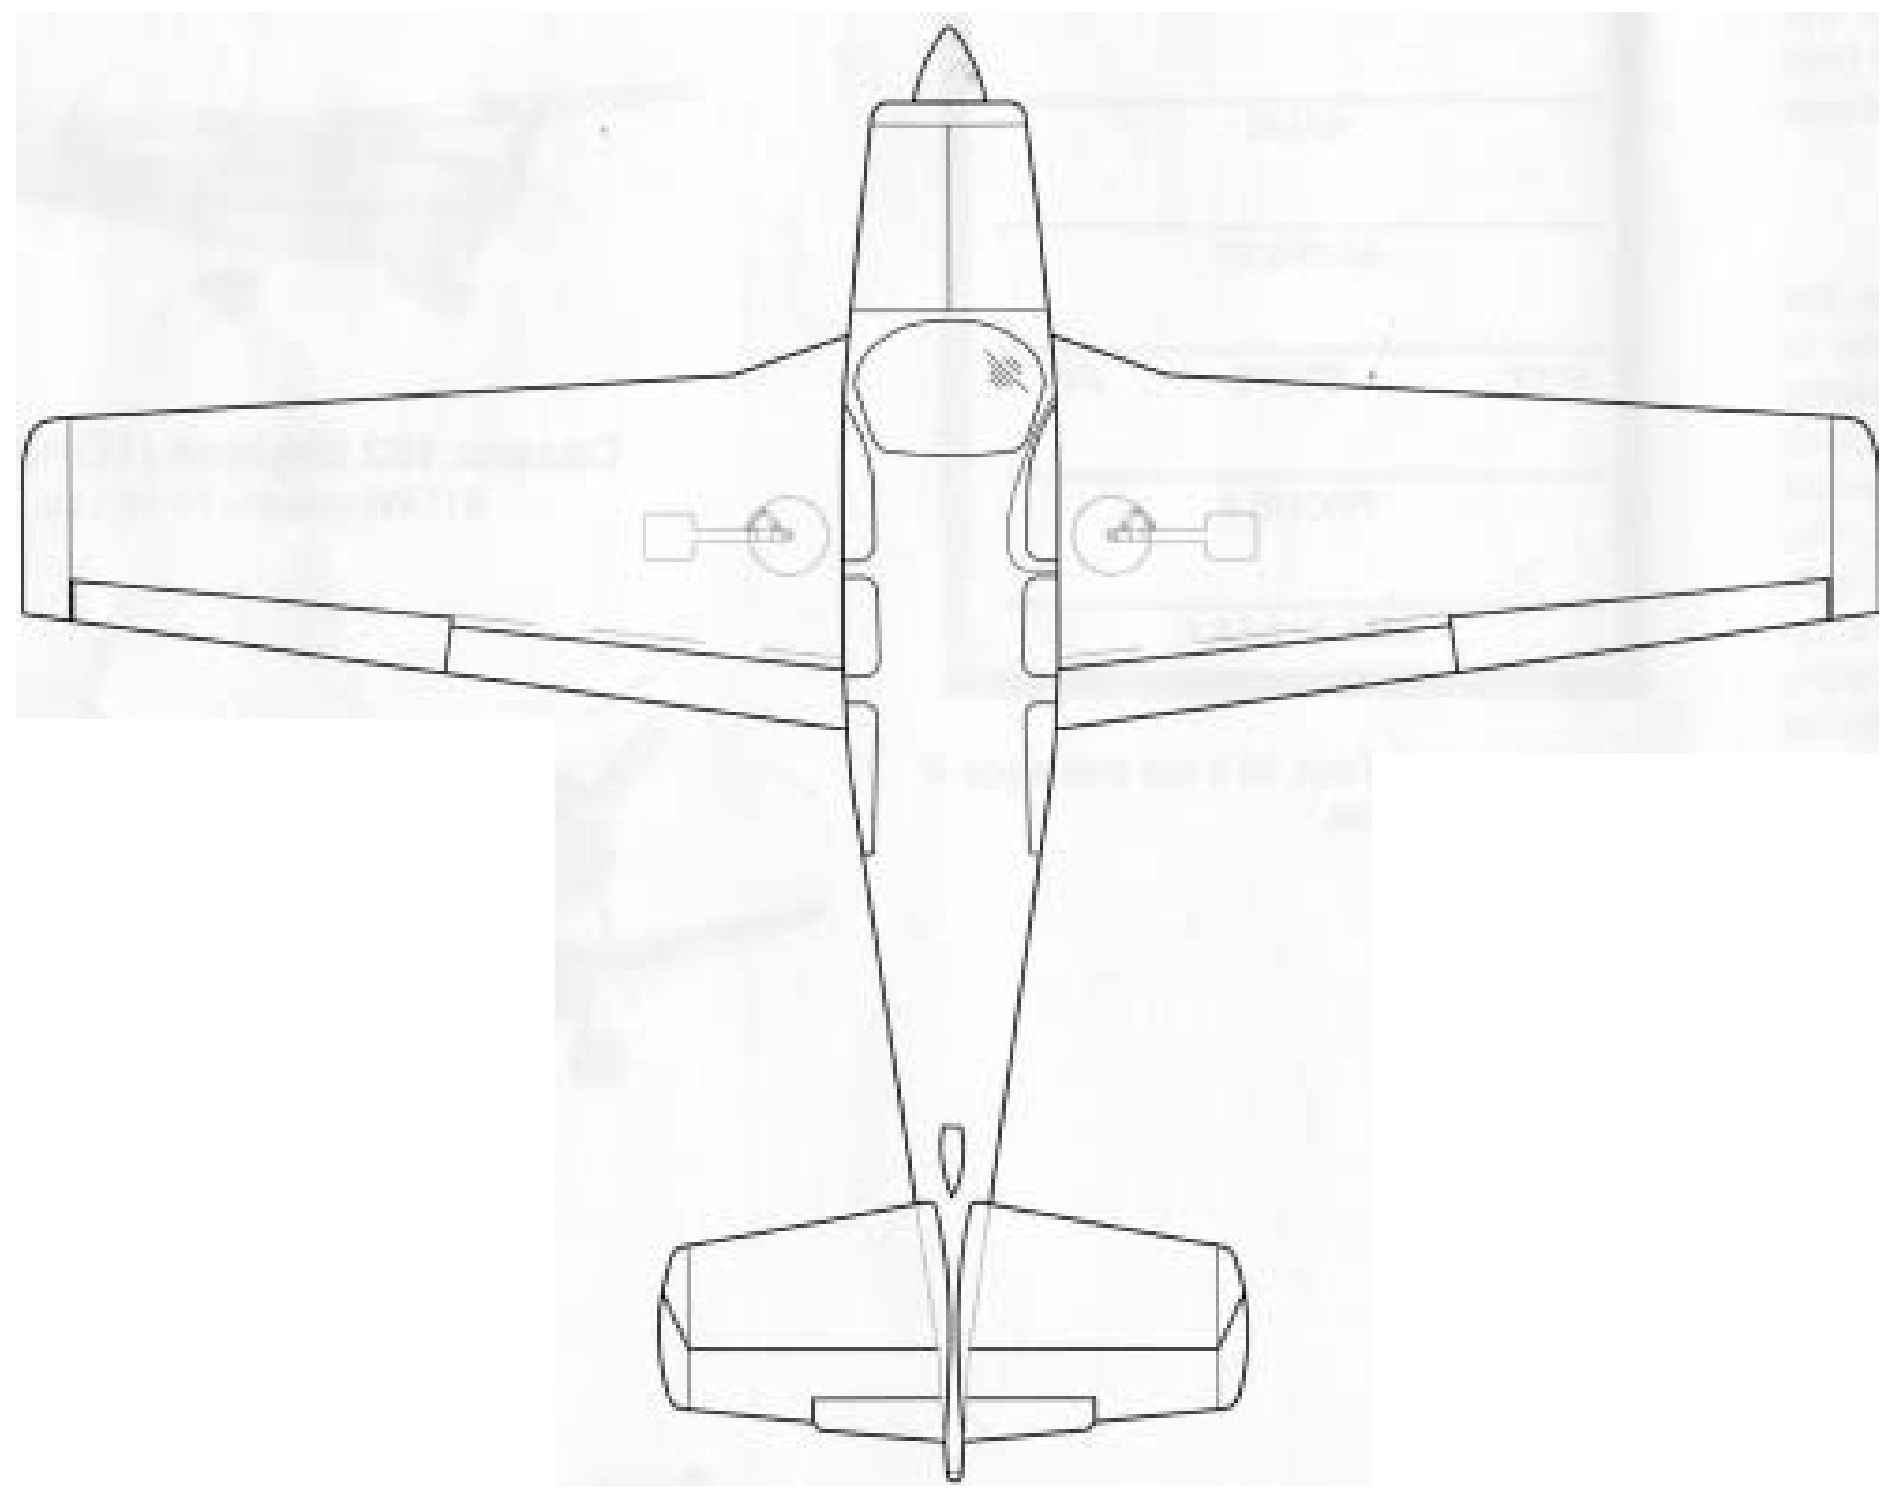 Information on Model Airplane Engines